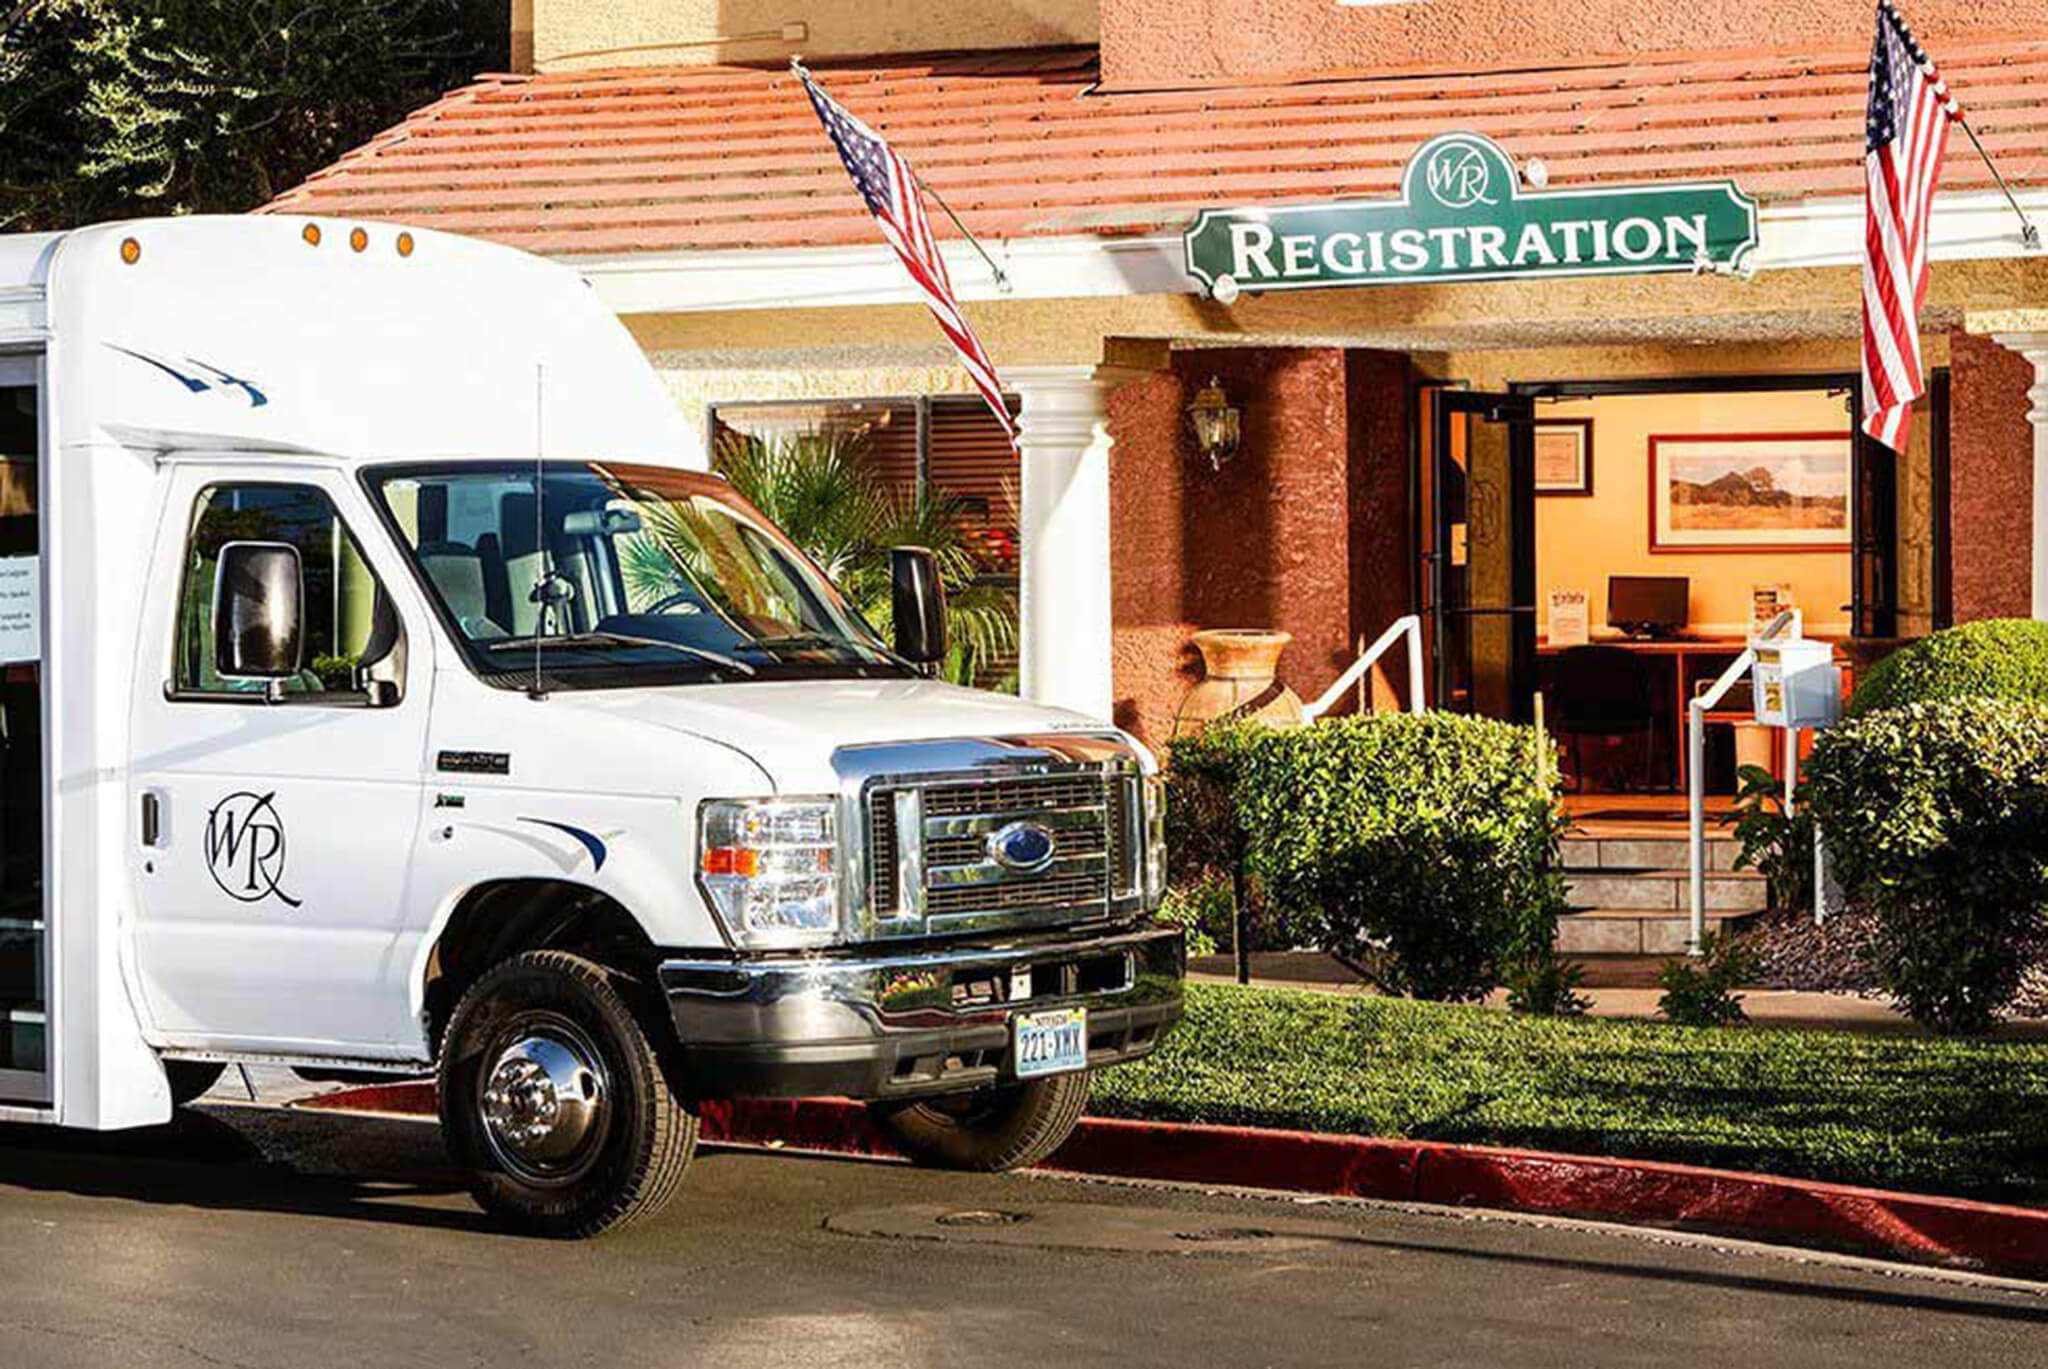 Does Westgate Myrtle Beach Resort offer airport transportation?